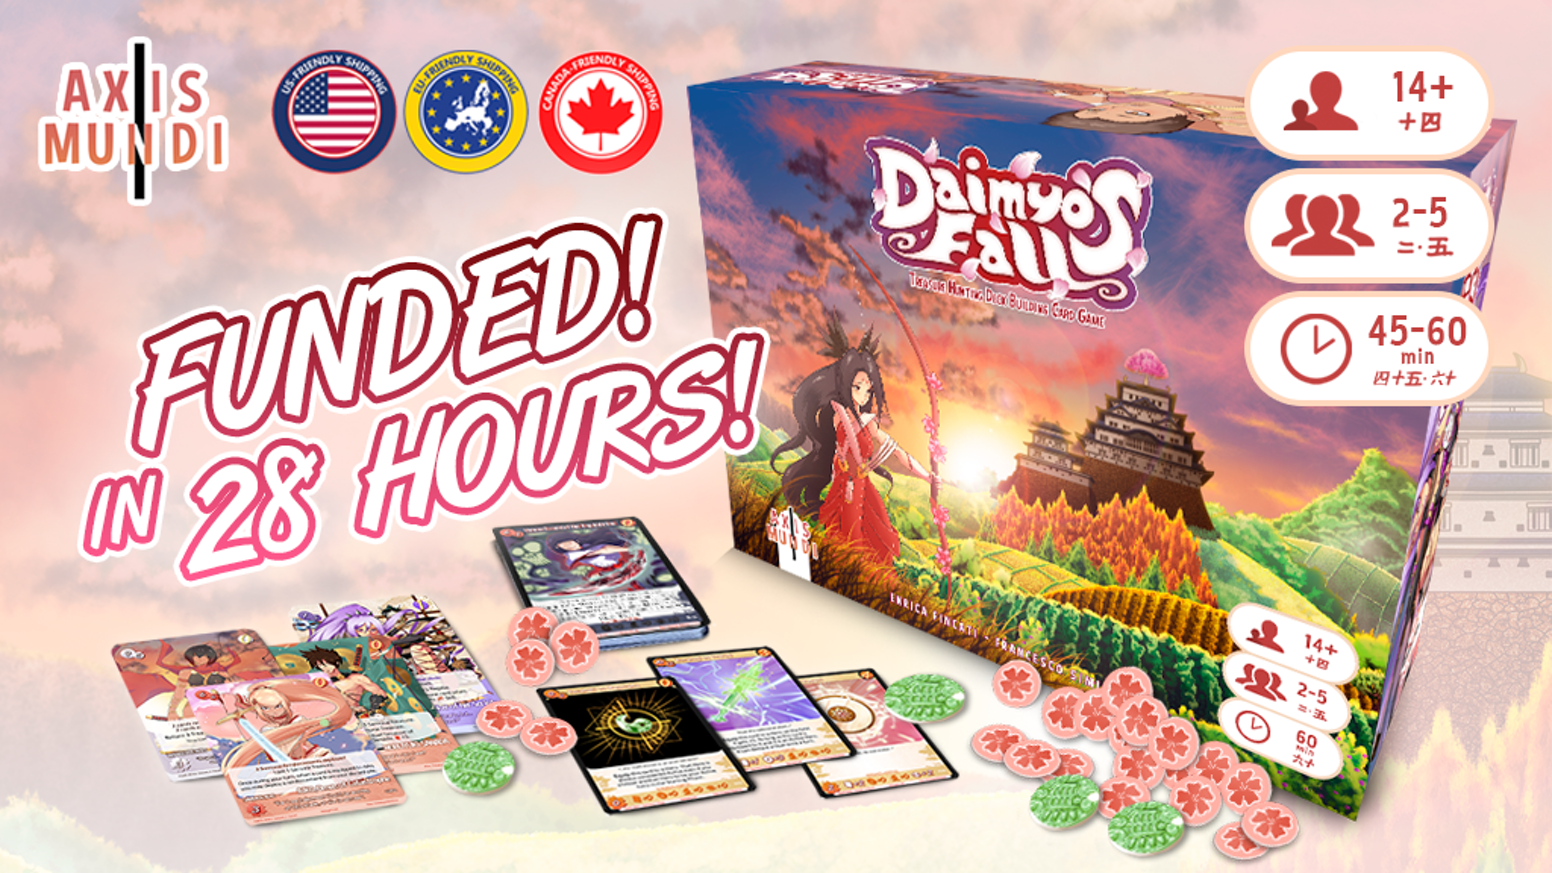 Conquer the dead daimyo's palace and seize the treasure in this stand alone 1-5 player deck building card game!